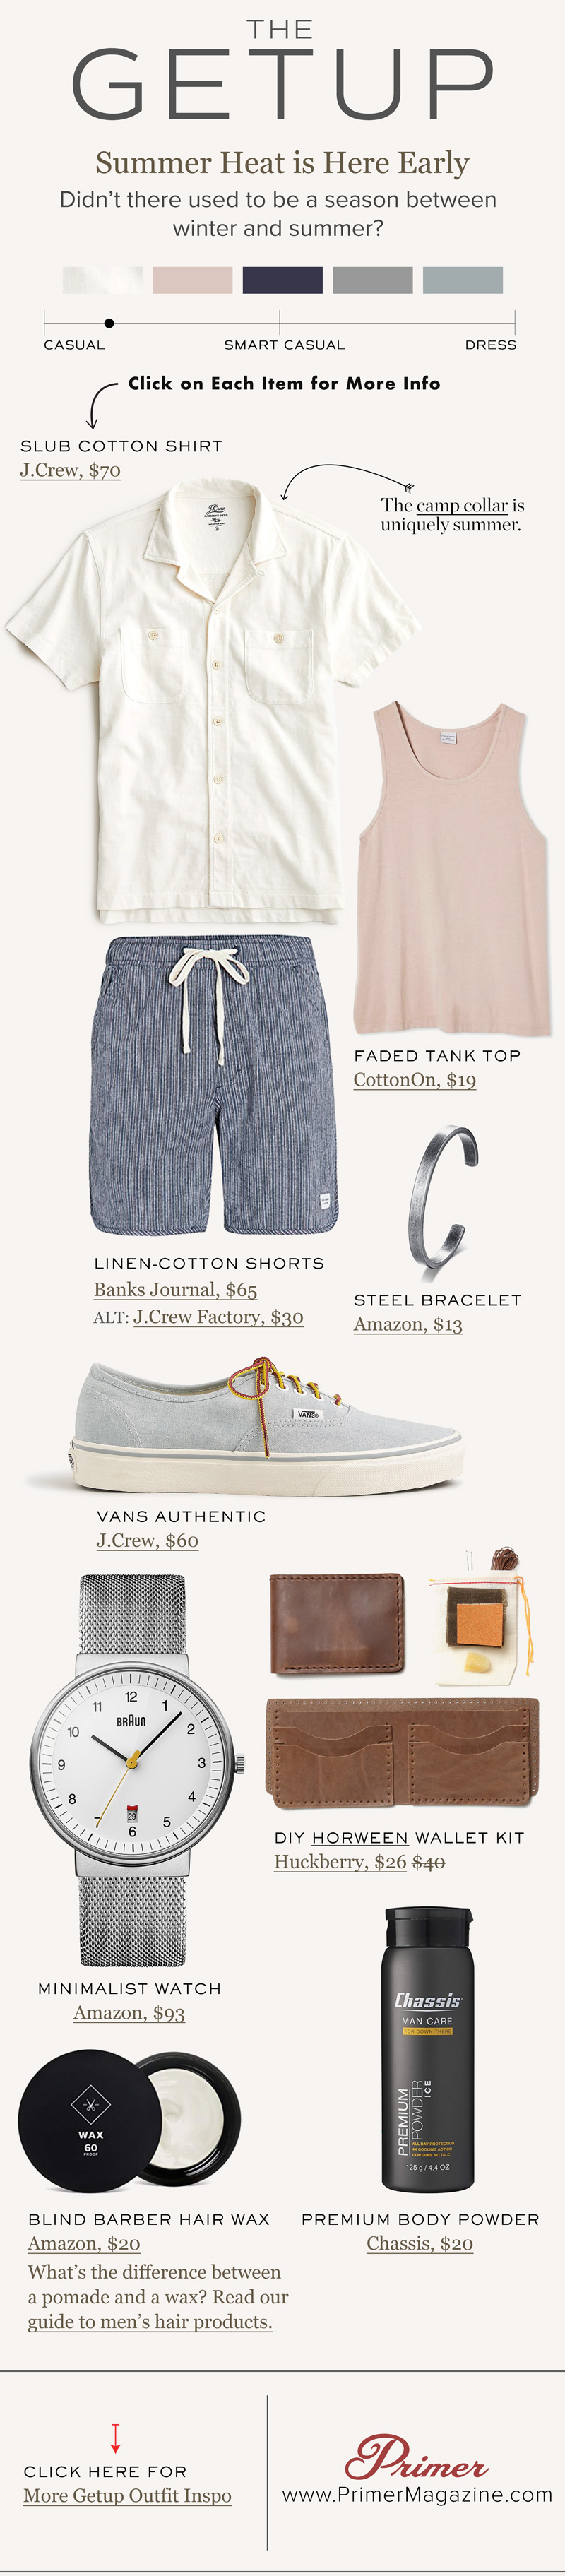 The Getup Summer Heat is Here Early –Didnt there used to be a season between winter and summer? men's casual style outift infographic